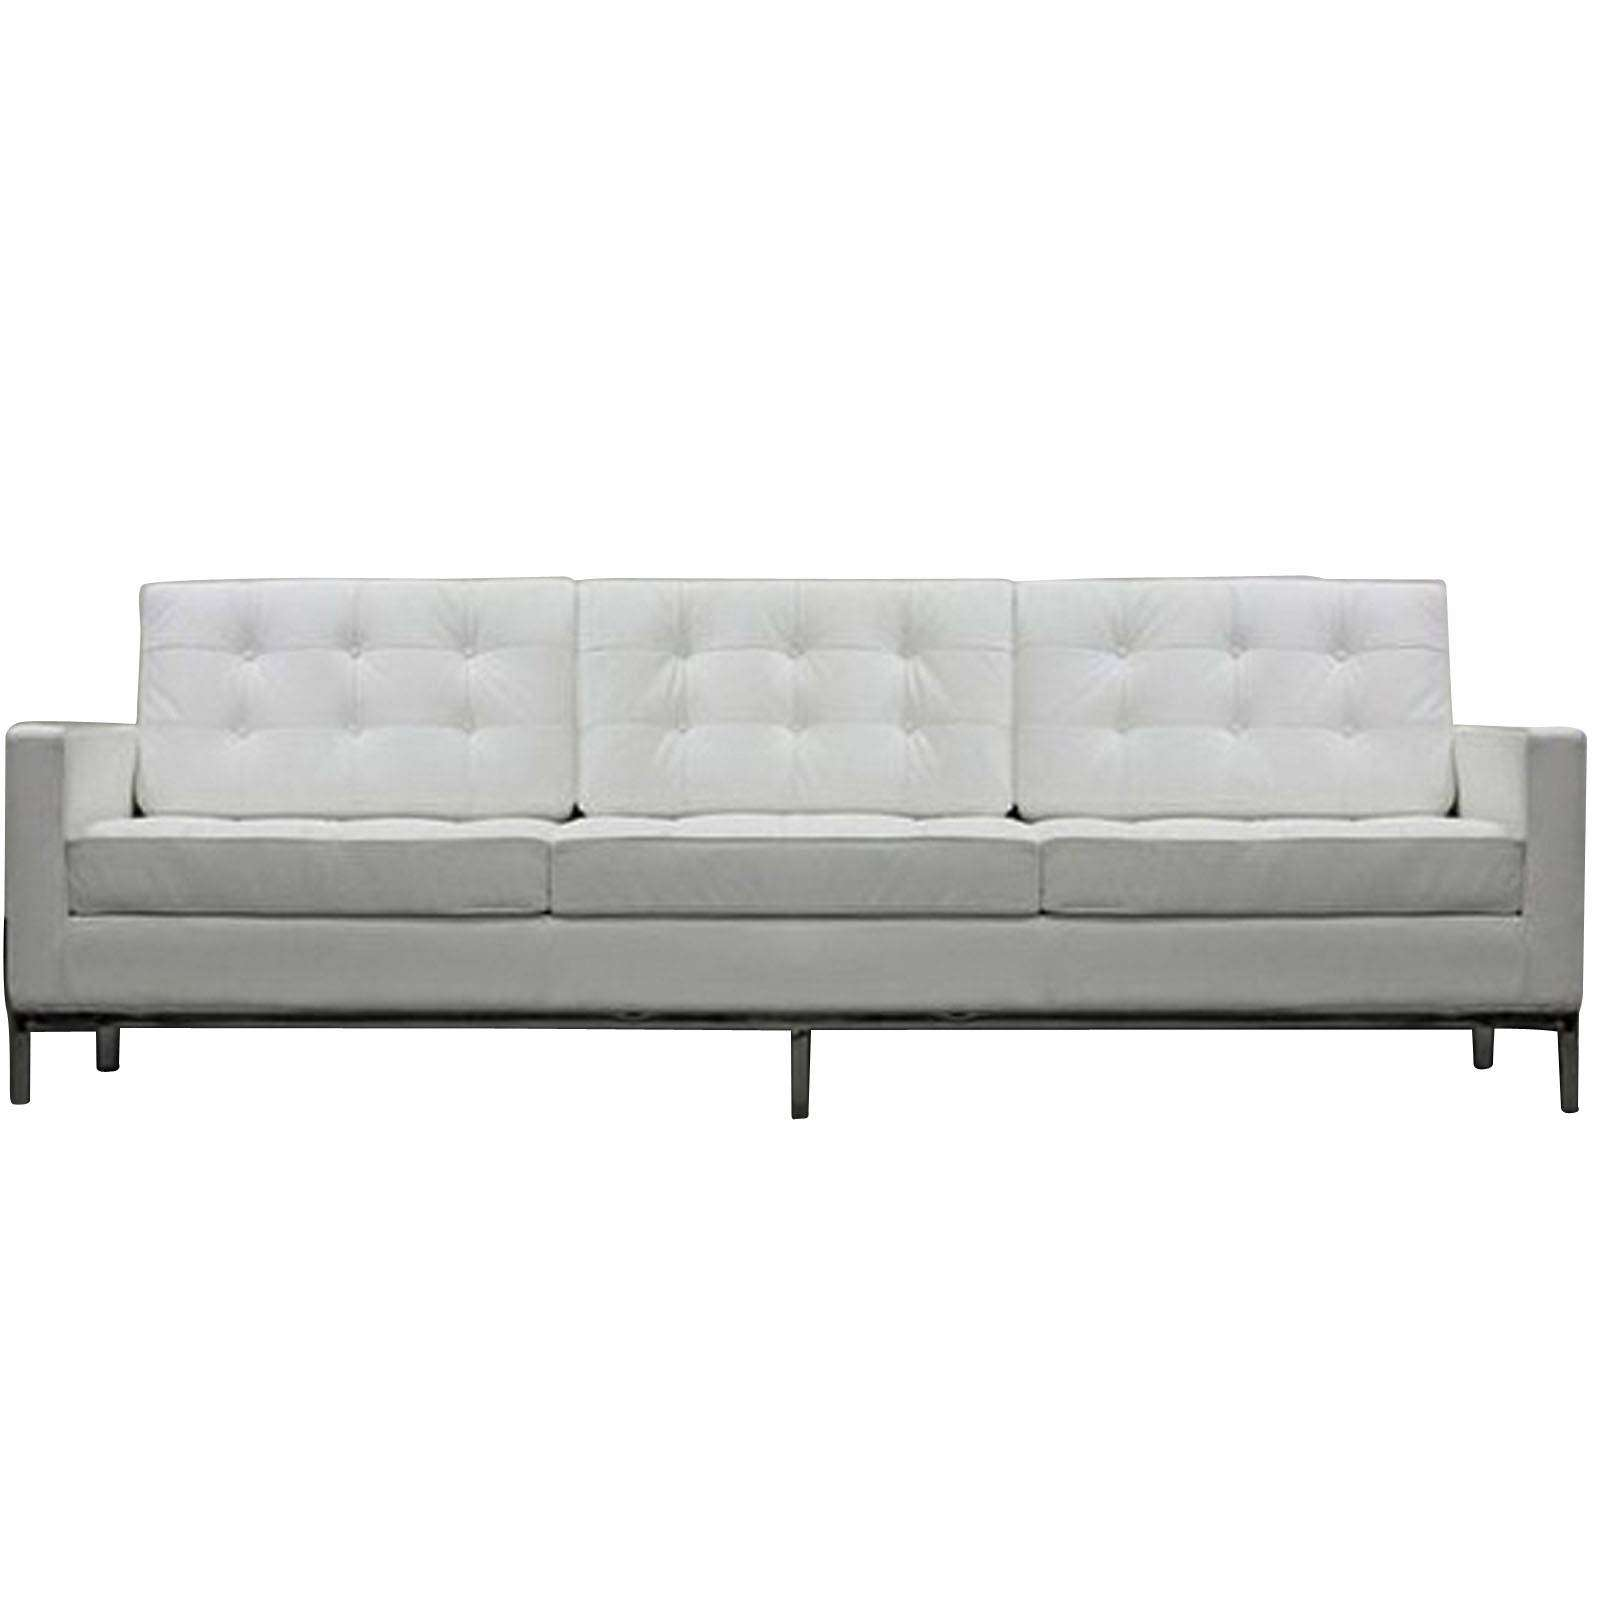 florence knoll sofa review cost plus sofas cork style couch leather